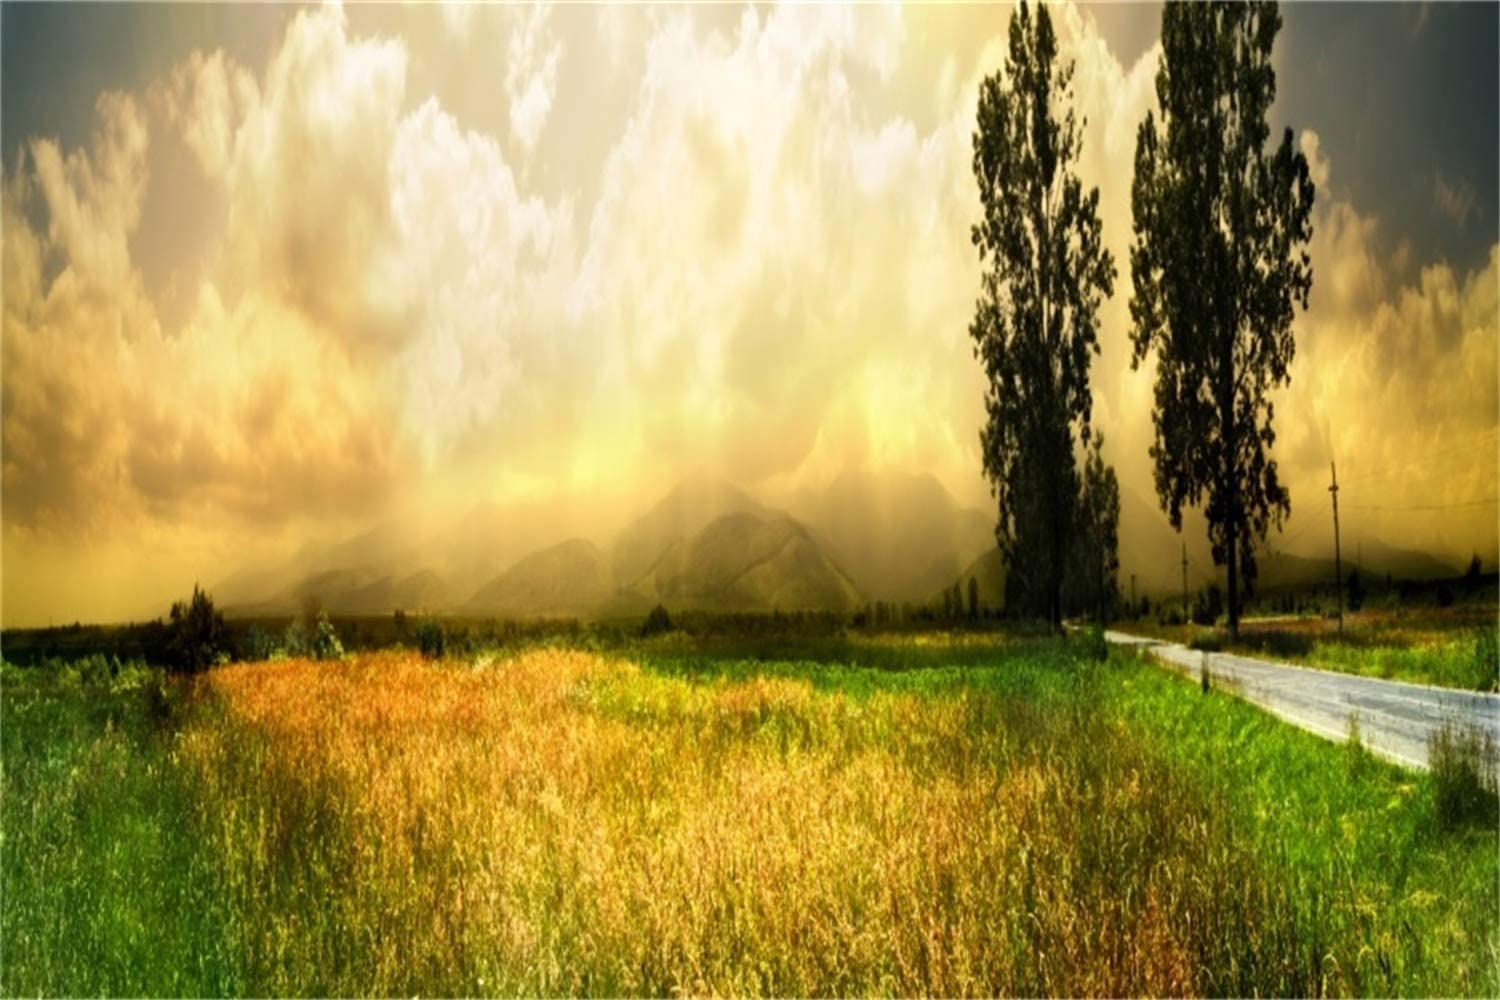 10x6.5ft Outdoor Farmland Highway Scenic Backdrop Polyester Dusk Golden Sunset Glow Hazy Mountains Trees Background Summer Scenery Landscape Wallpaper Event Activities Shoot Party Decoration